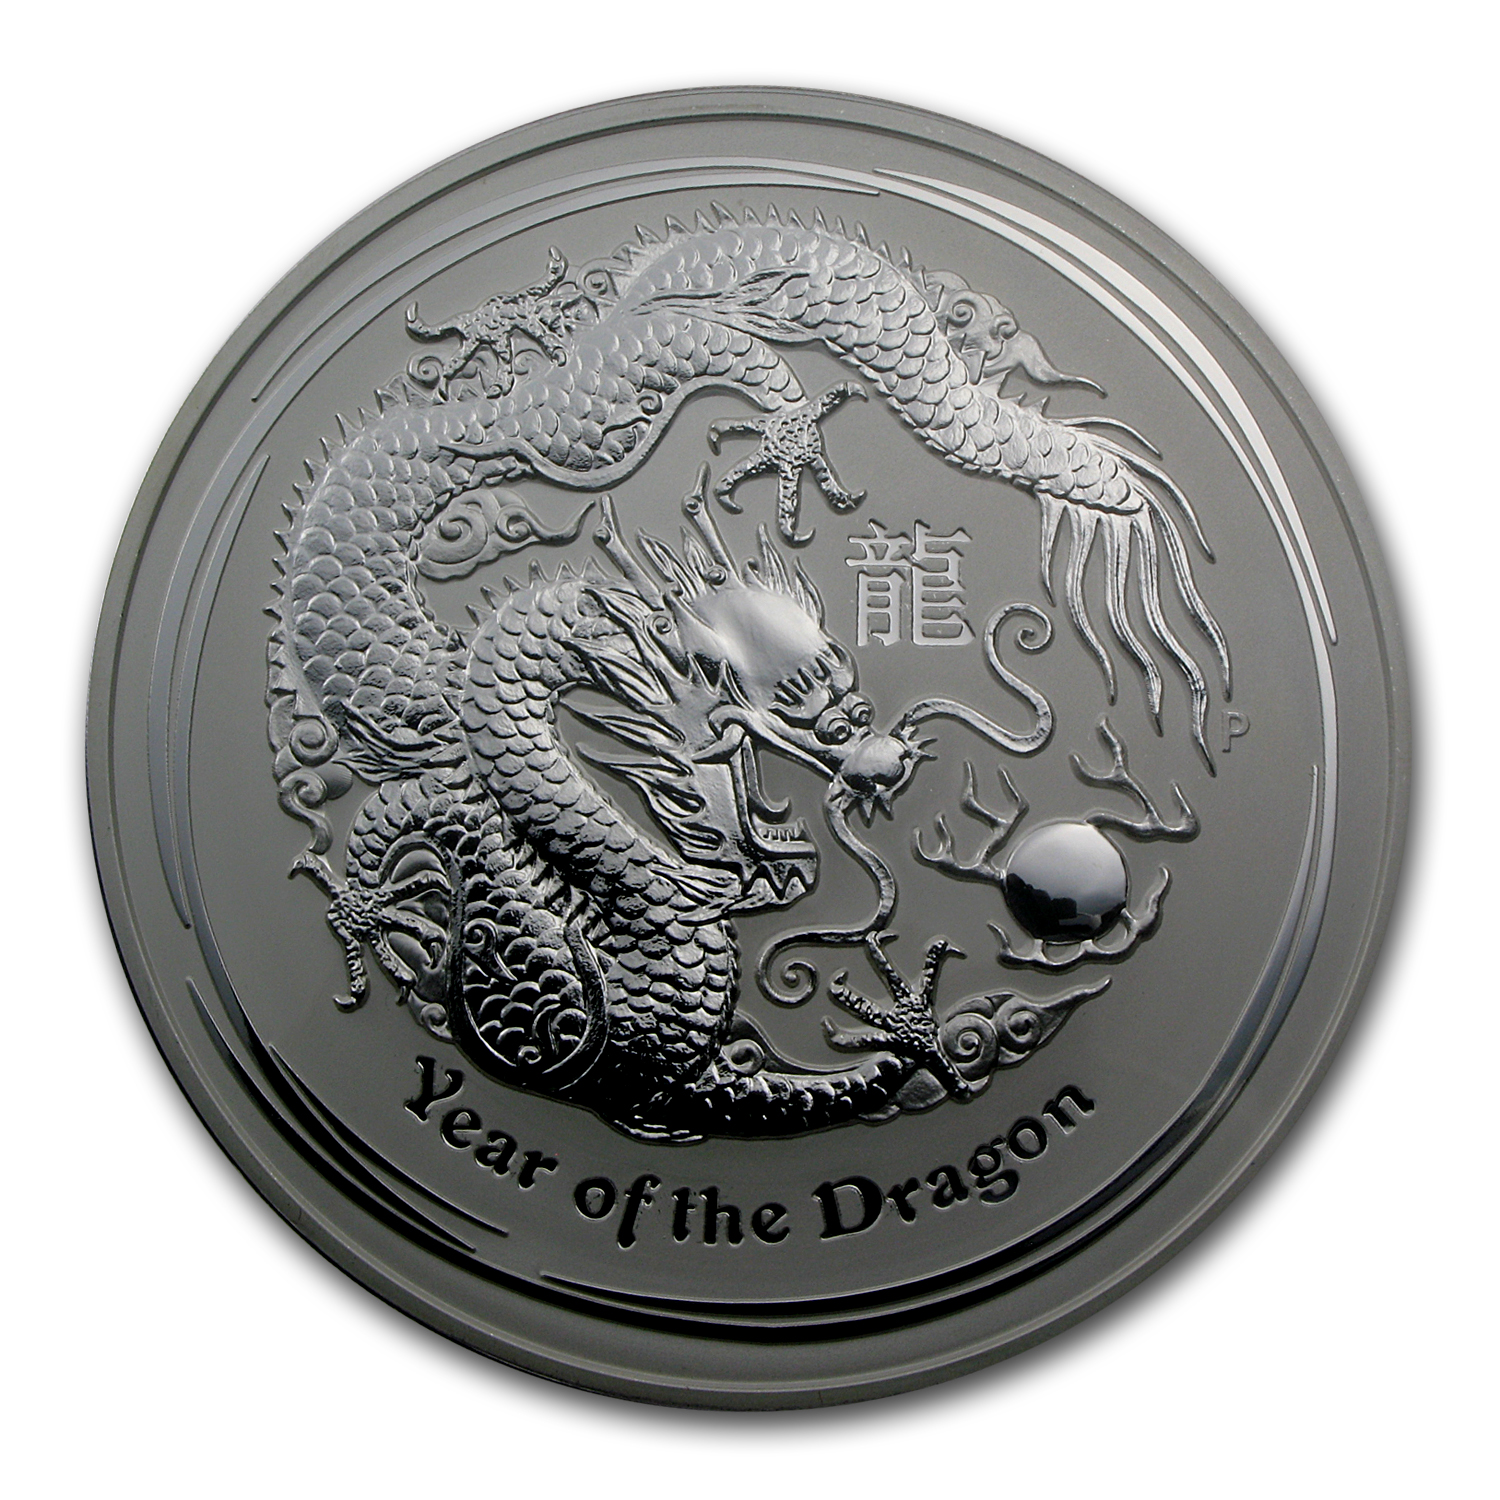 2012 Australia 1 kilo Silver Year of the Dragon MS-69 NGC